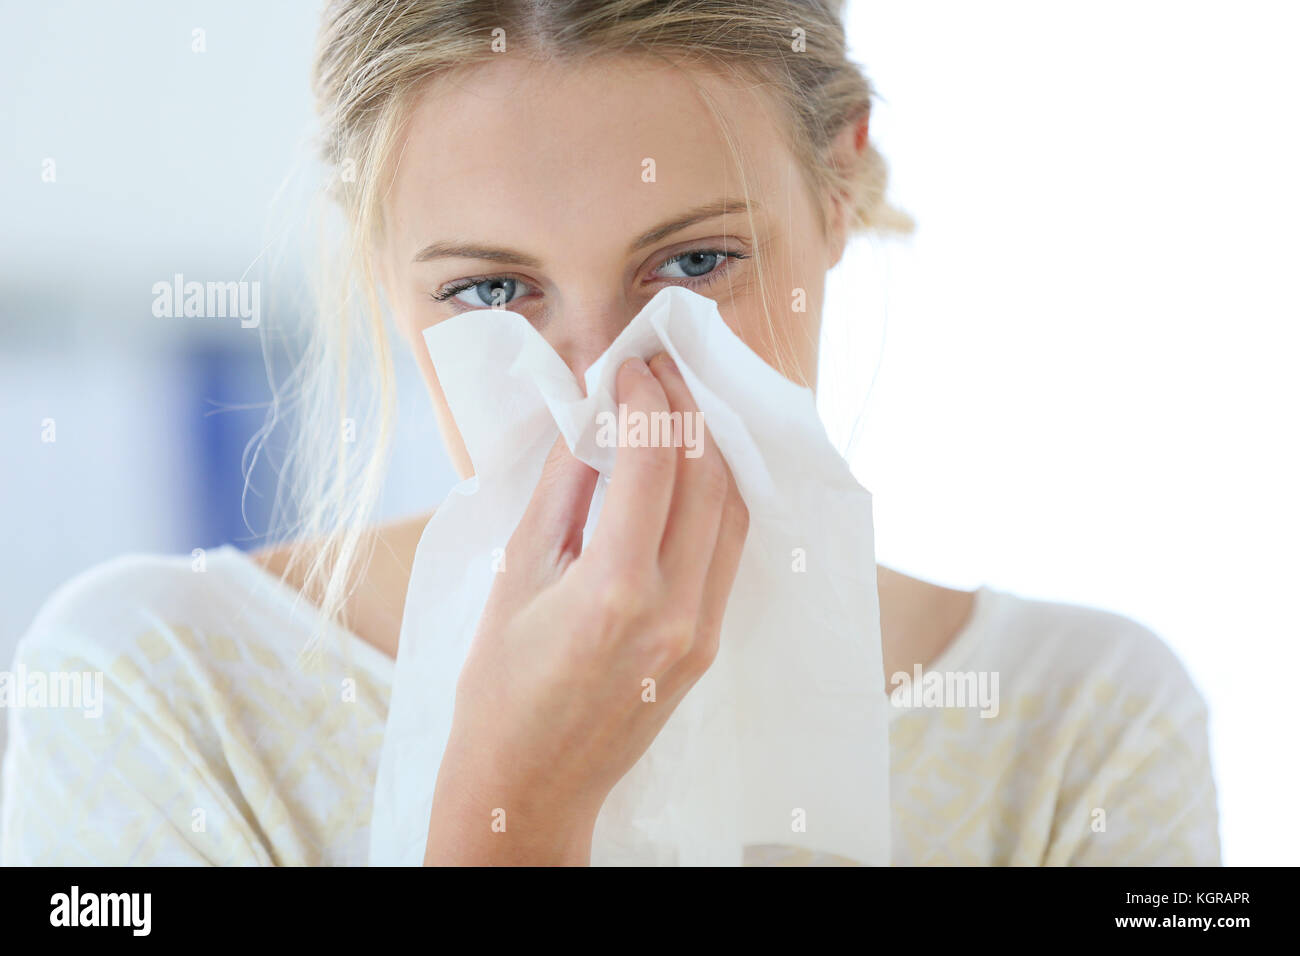 Young woman with cold blowing her runny nose - Stock Image